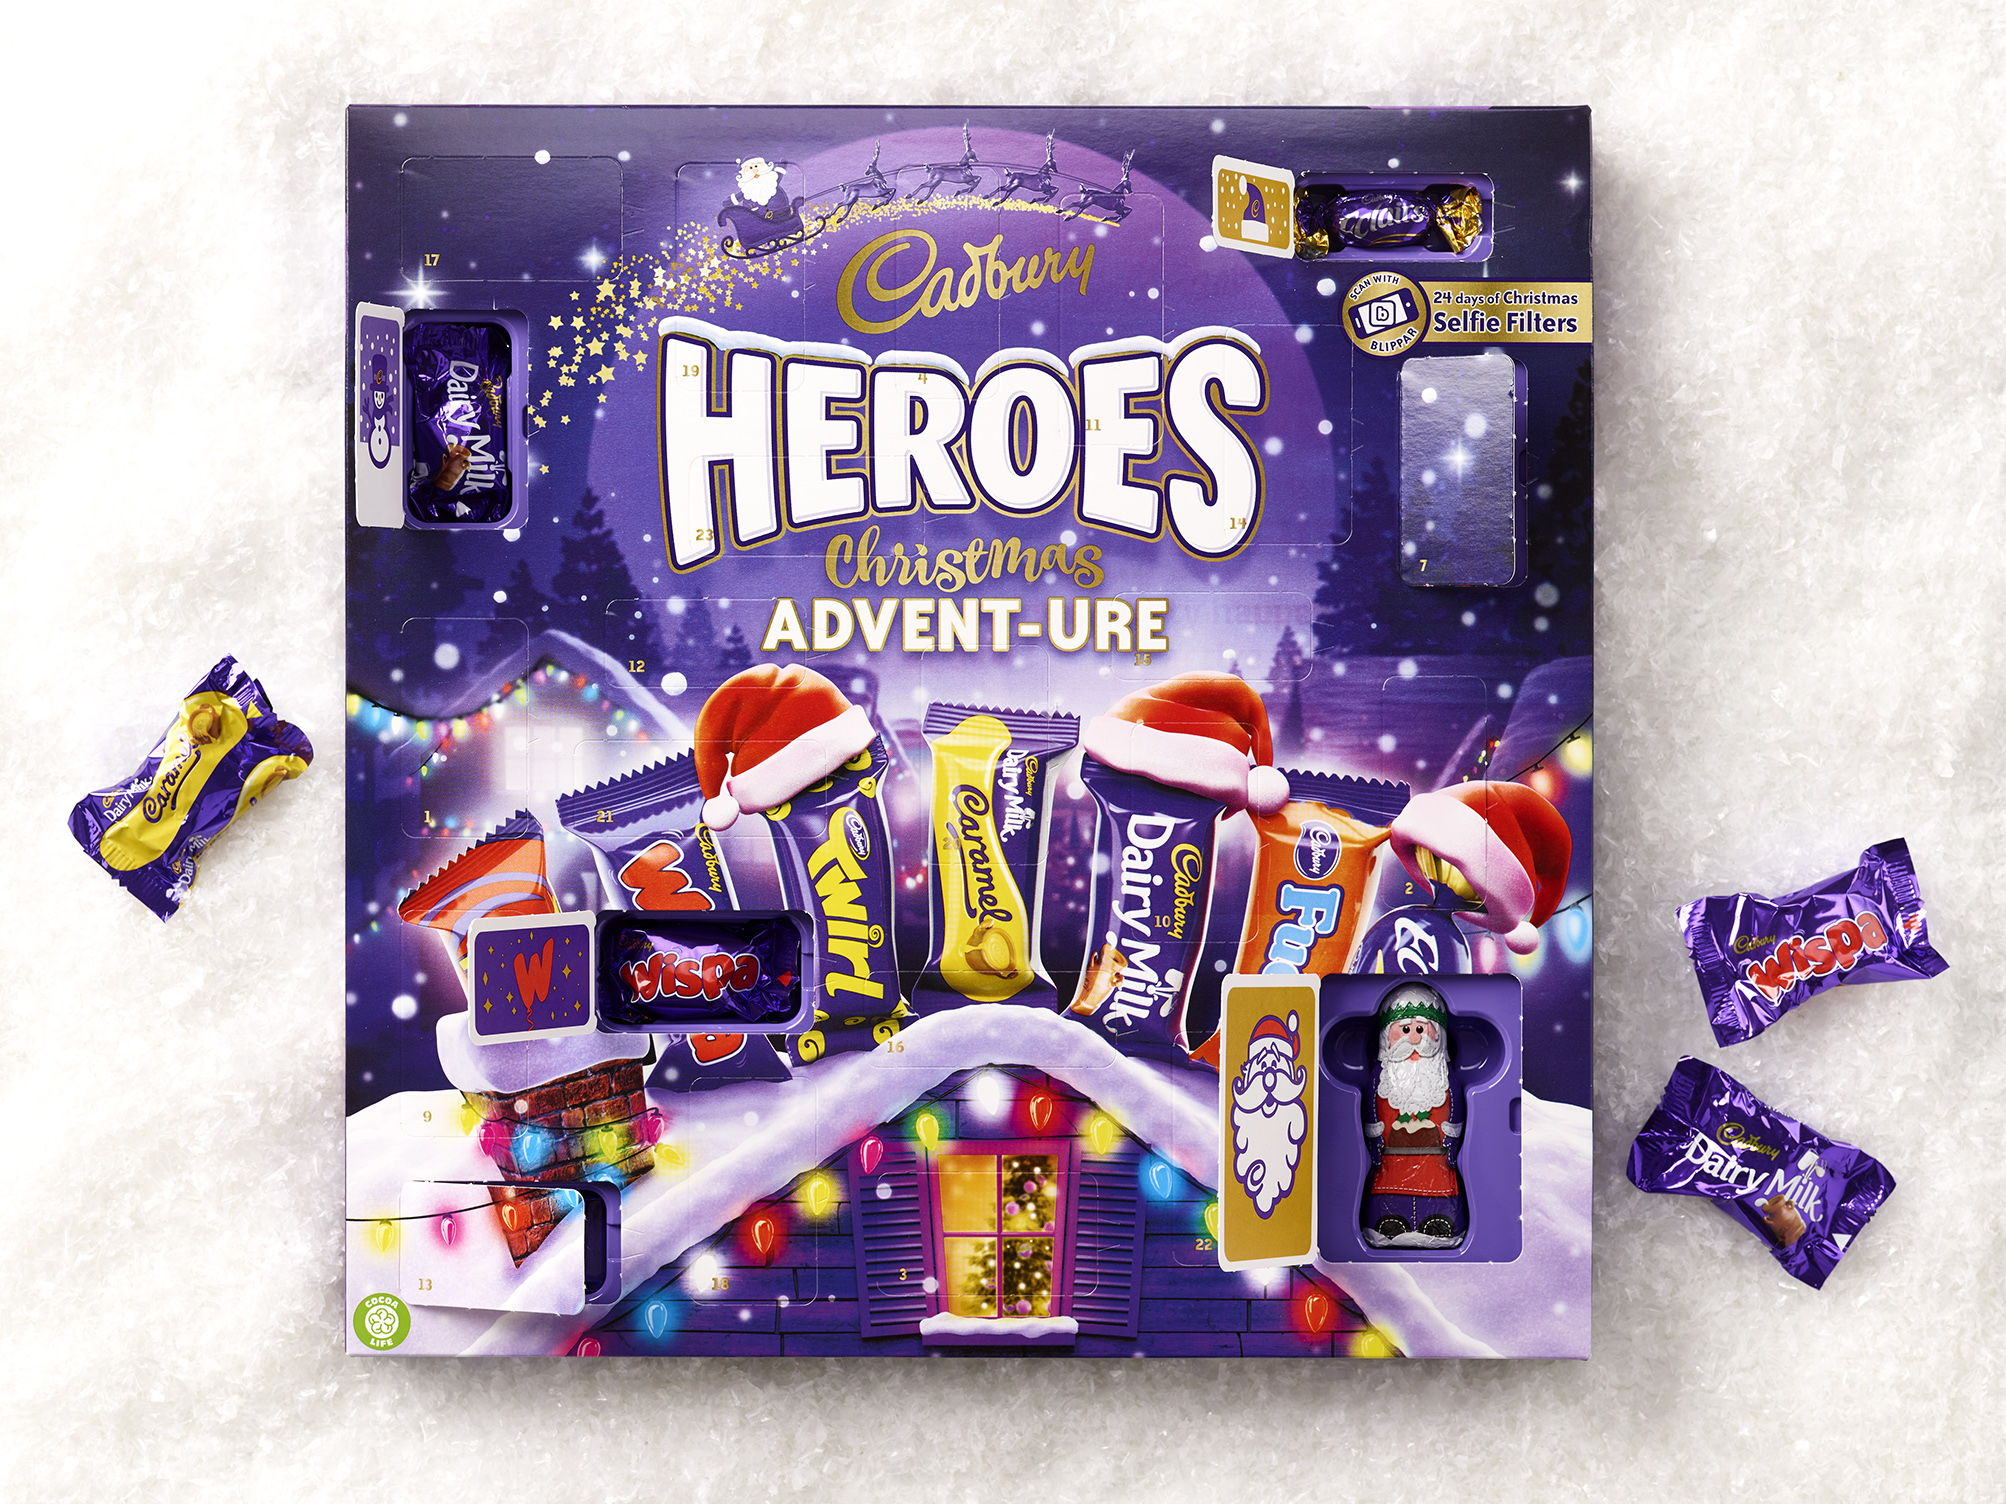 Cadbury Heroes Advent Calendar 2017 snow and chocs.jpg